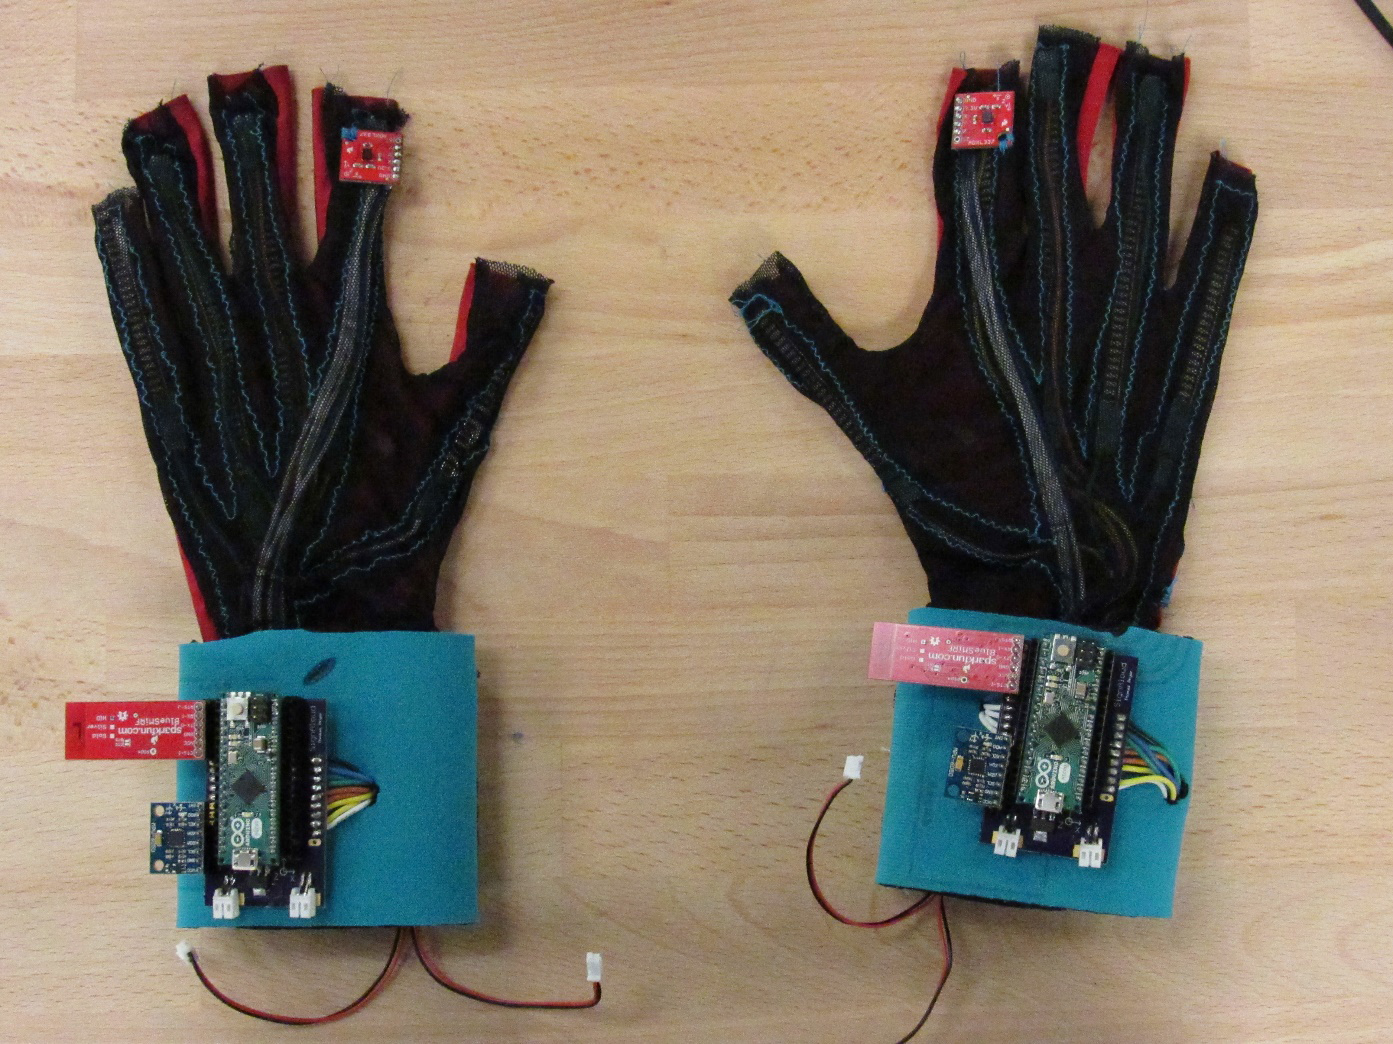 Sign-Language Translation Gloves – technology